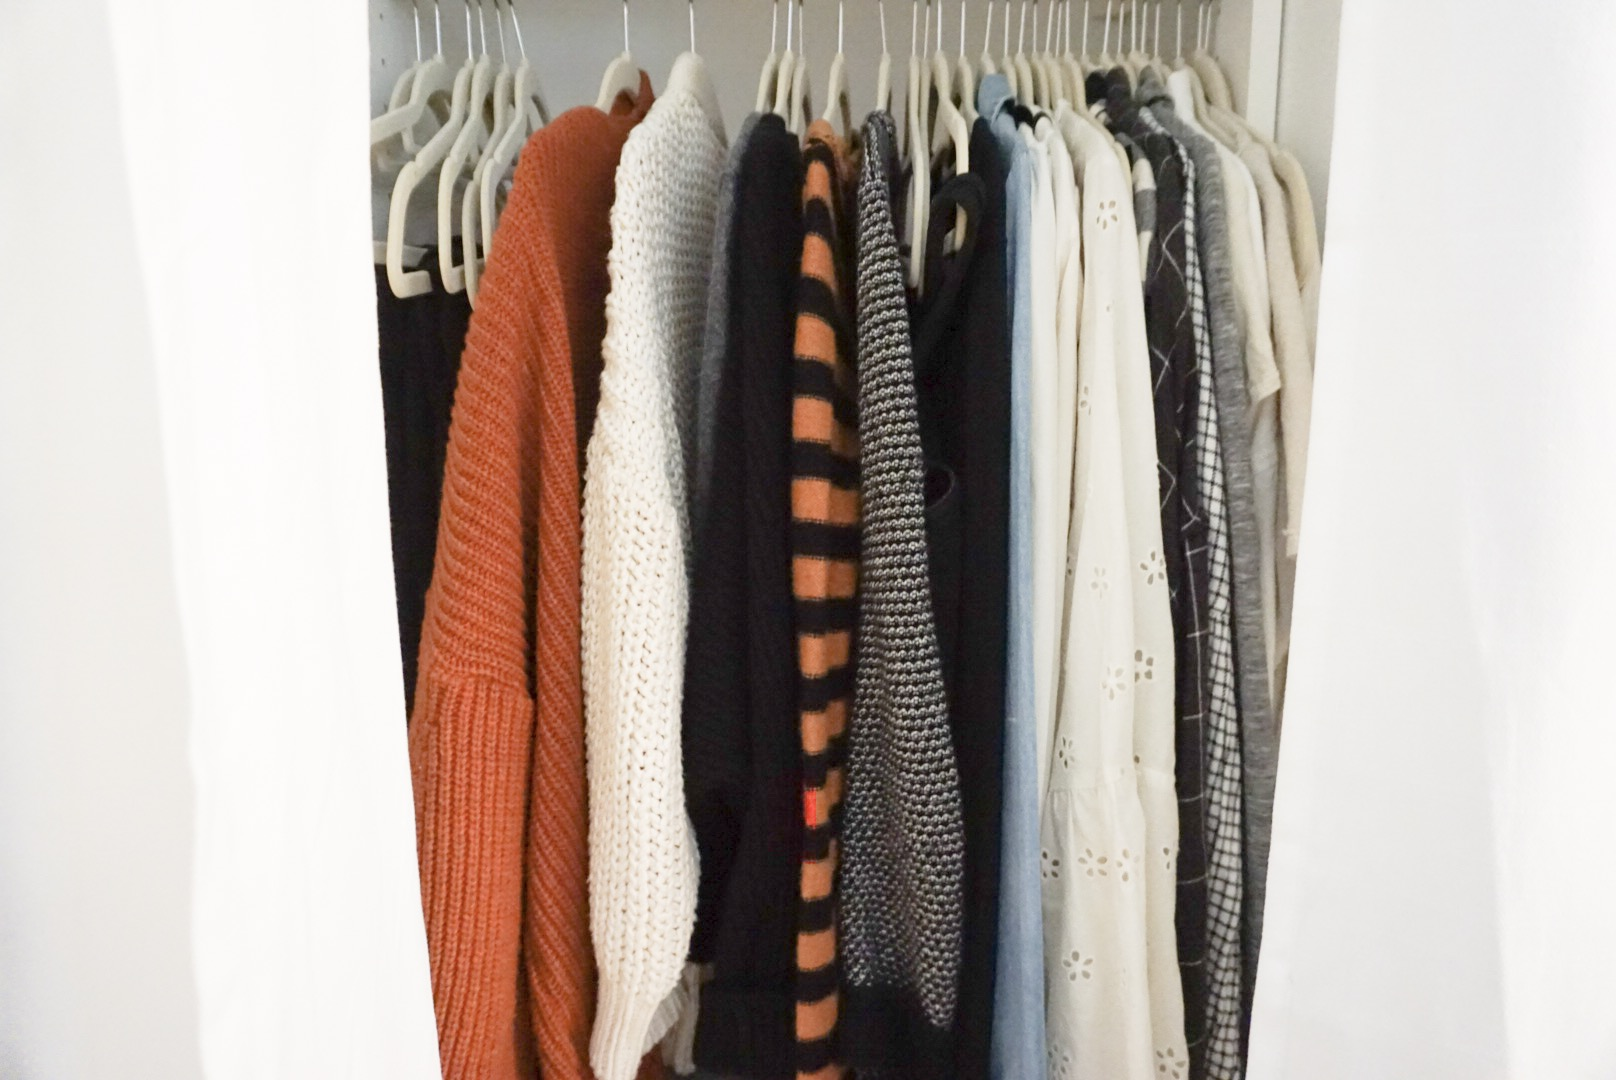 My section of hanging clothes in our closet